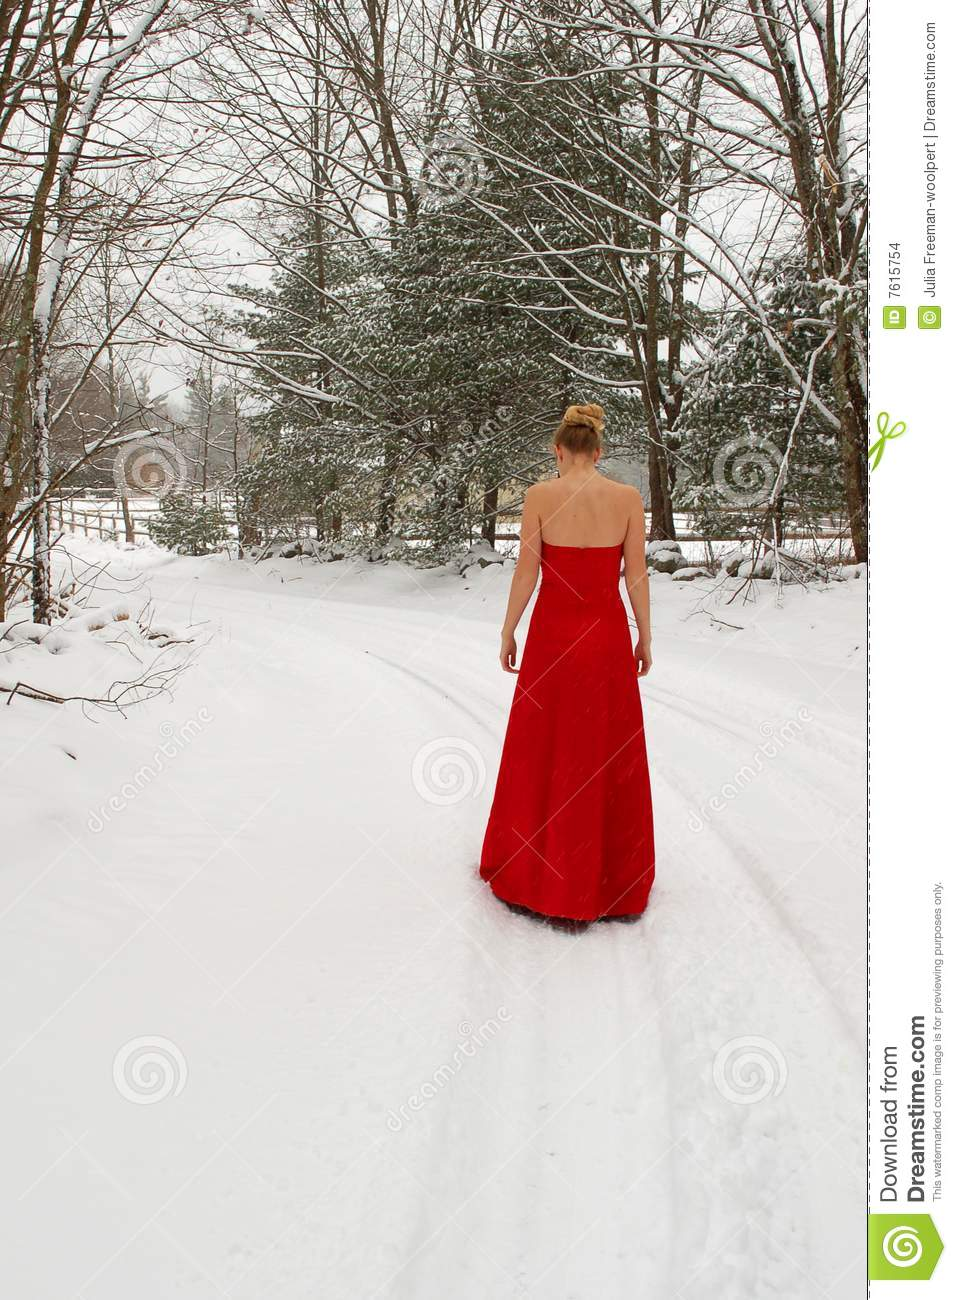 rotes kleid im schnee stockfoto bild von winter. Black Bedroom Furniture Sets. Home Design Ideas